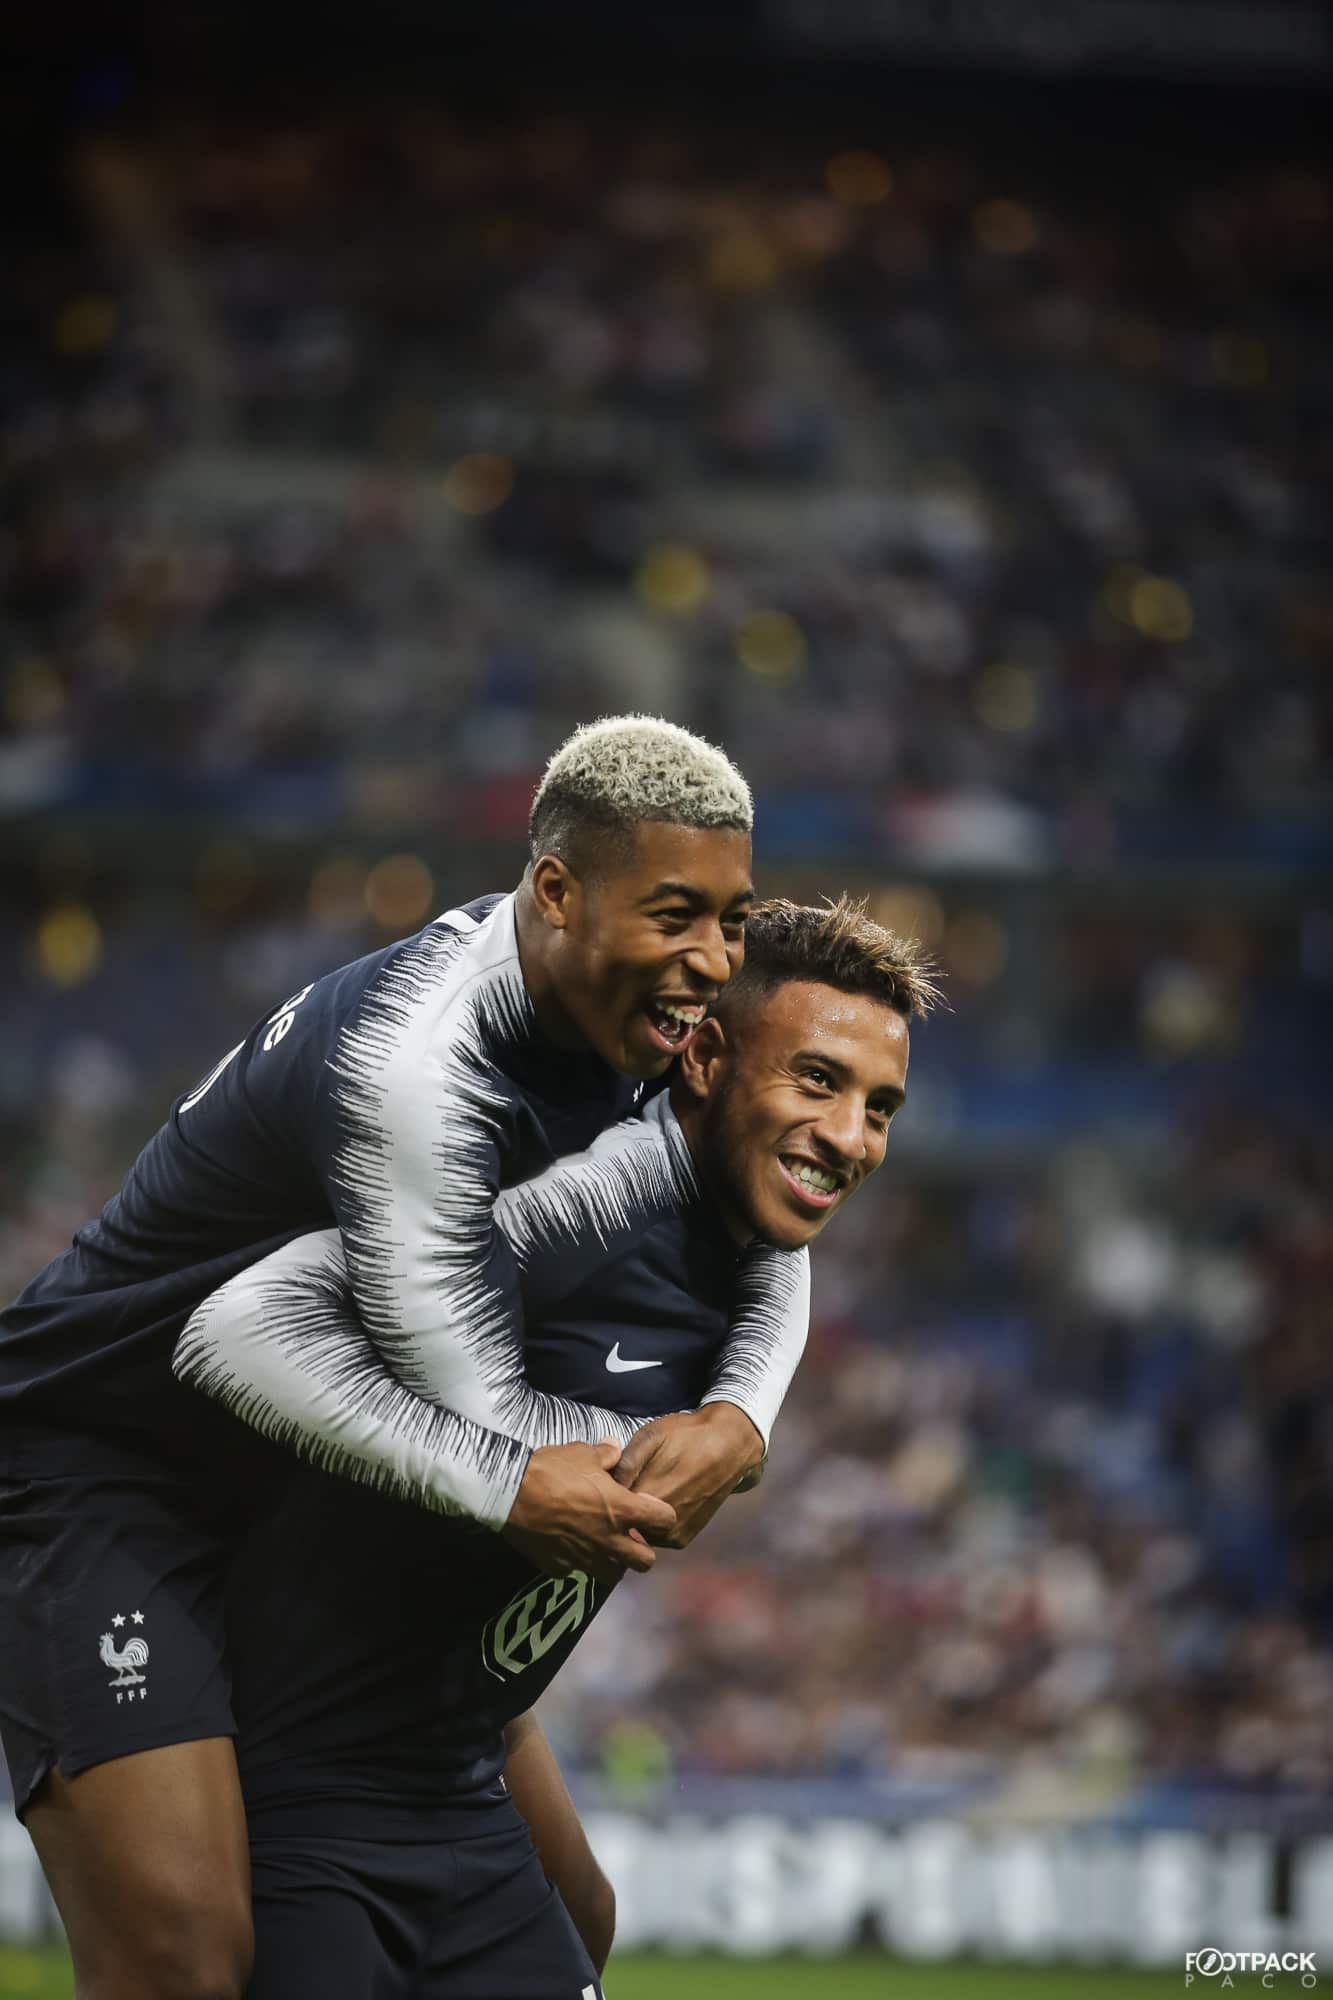 tolisso-kimpembe-top-50-photos-footpack